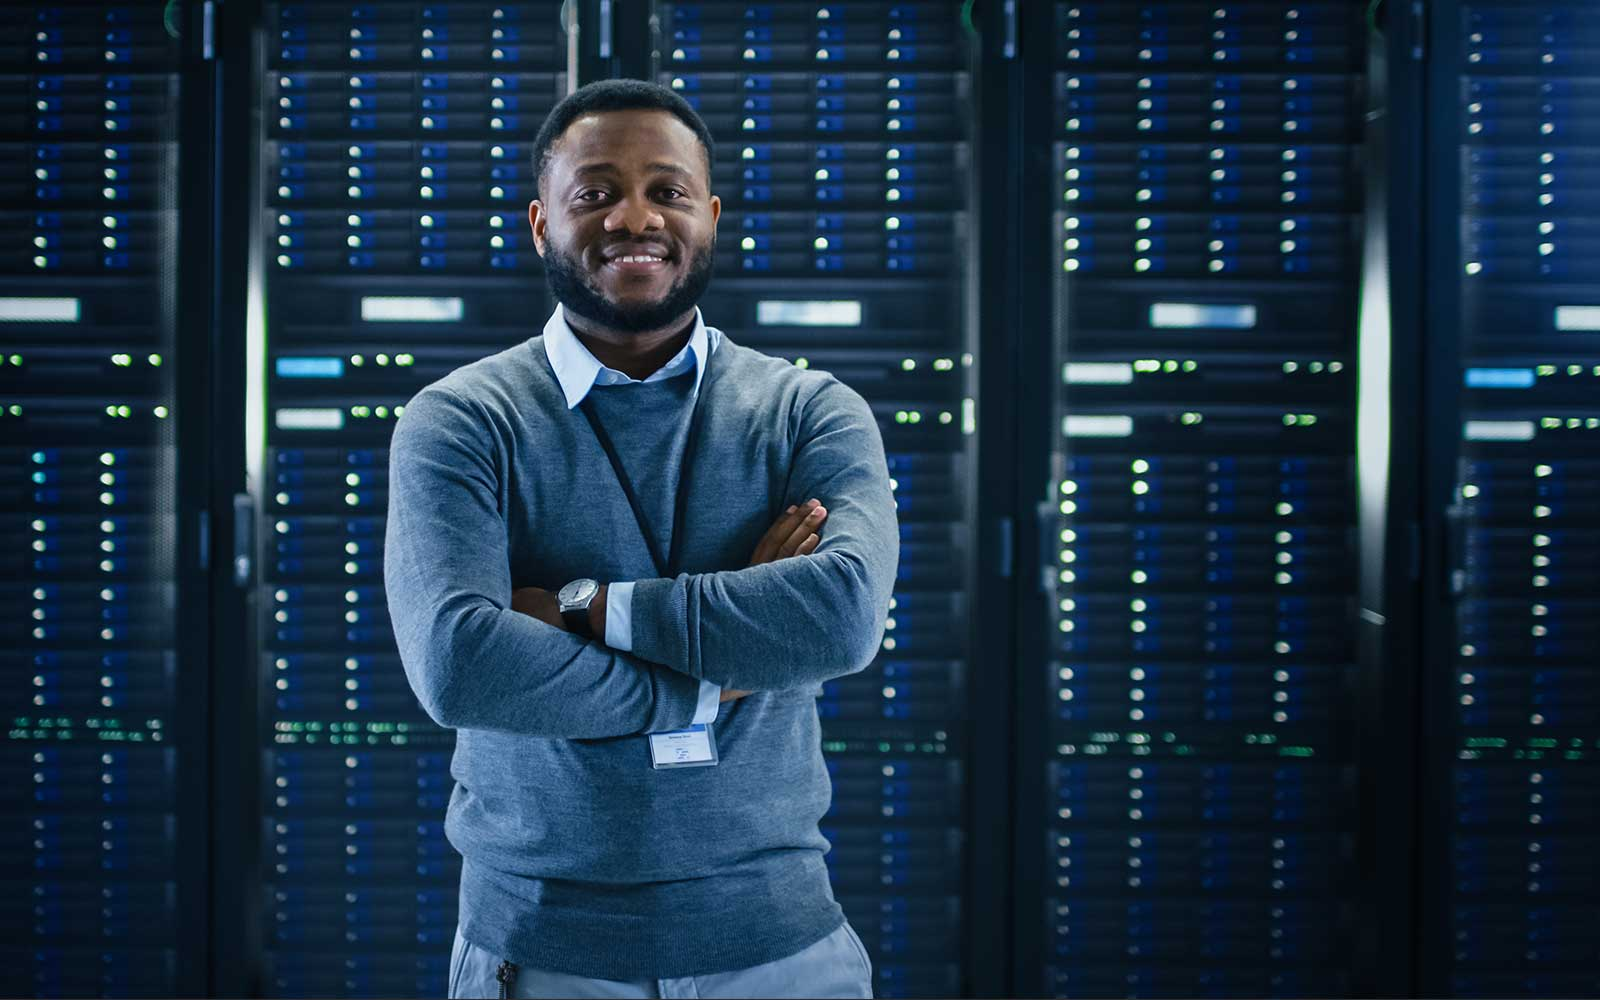 AWS Architect standing in front of servers